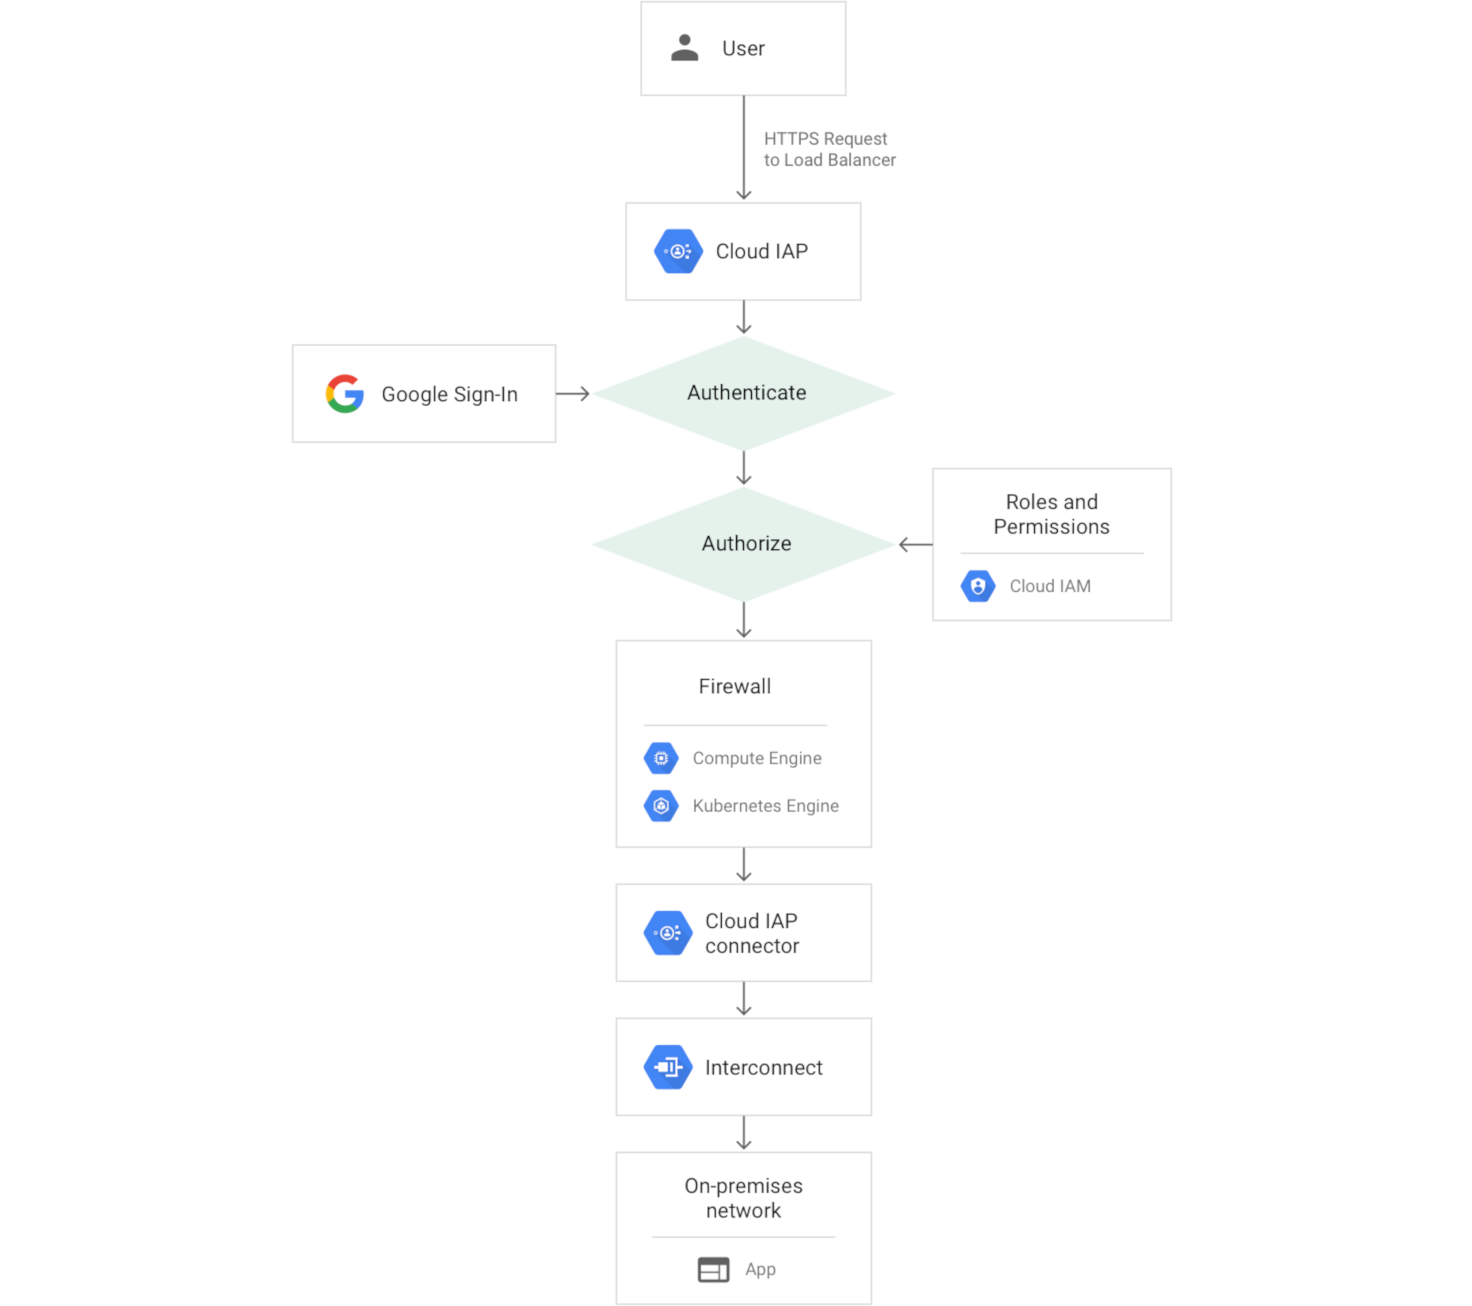 diagram of request path to an on-premises app when using Cloud IAP